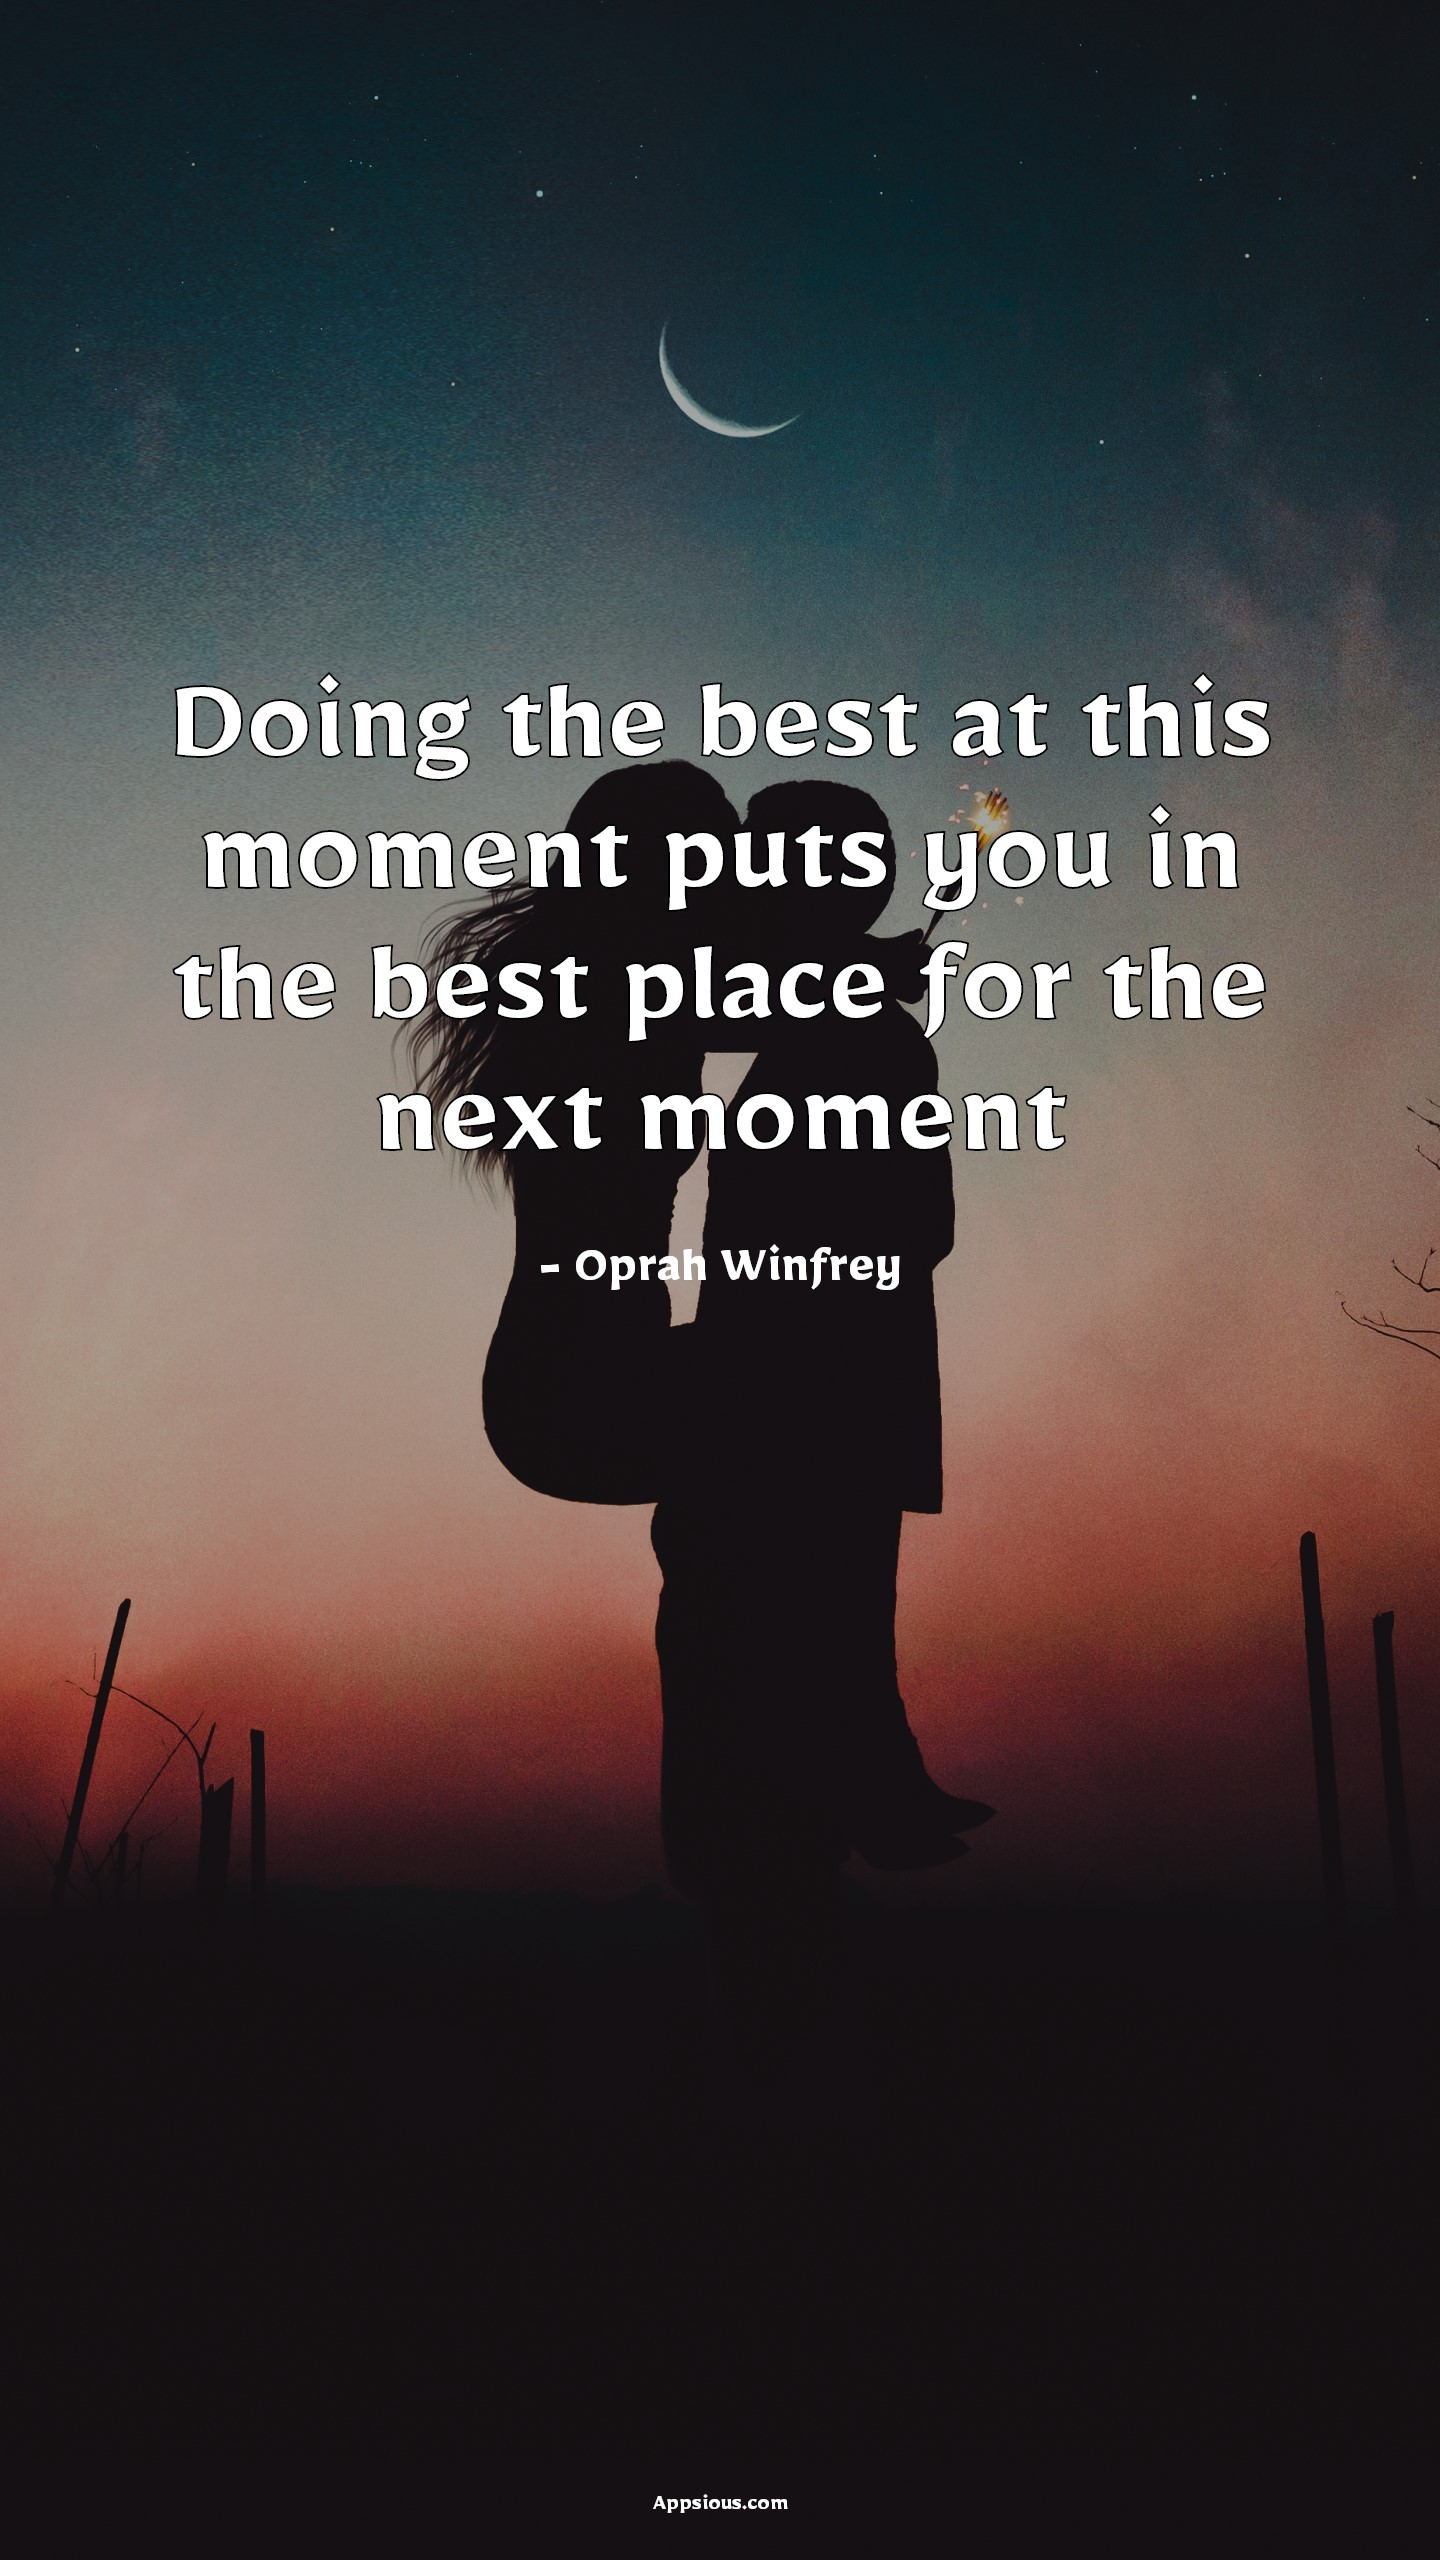 Doing the best at this moment puts you in the best place for the next moment